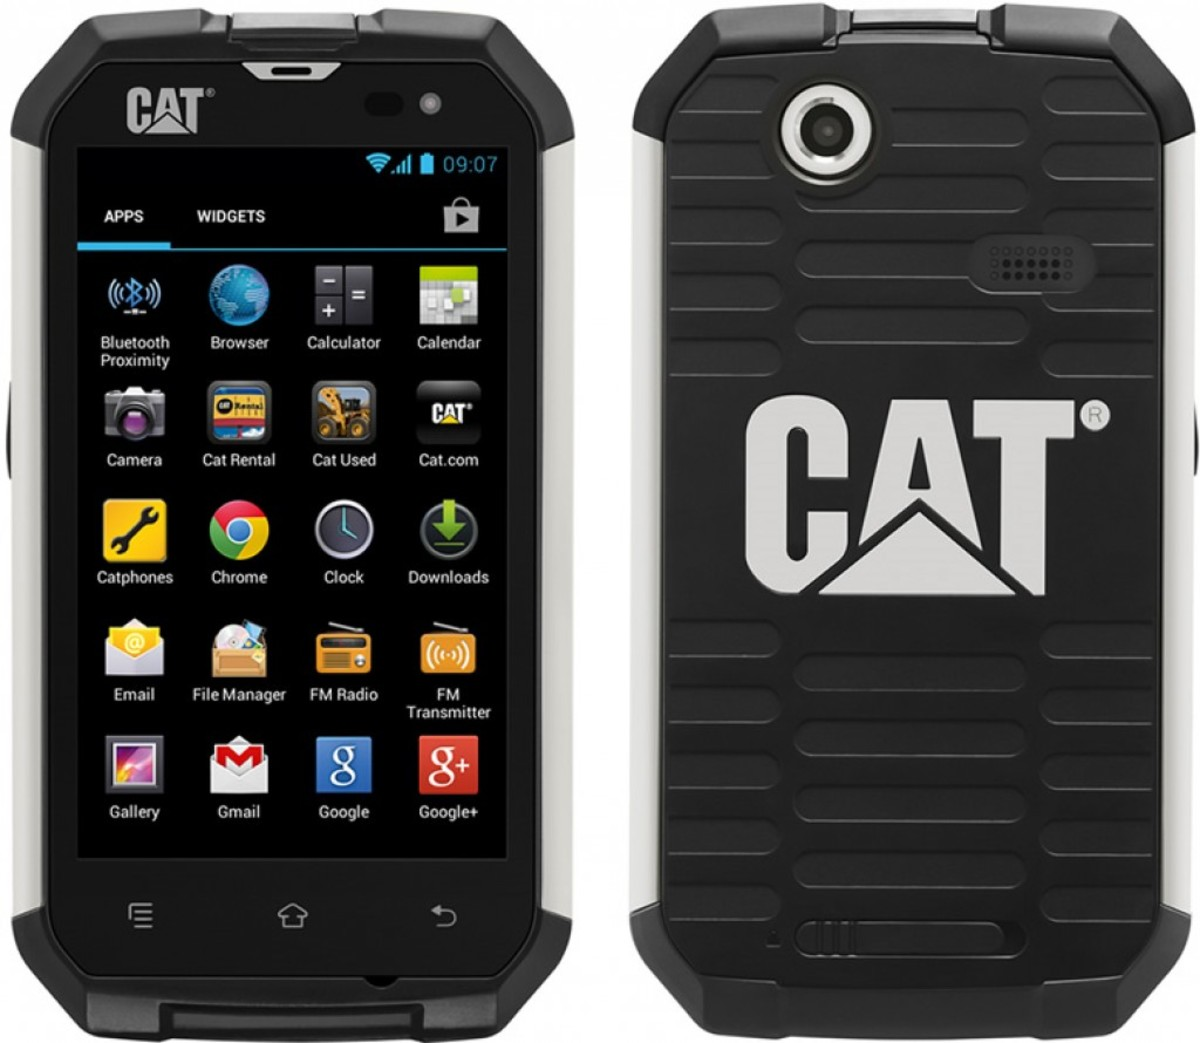 Caterpillar CAT B15 review -smartphone